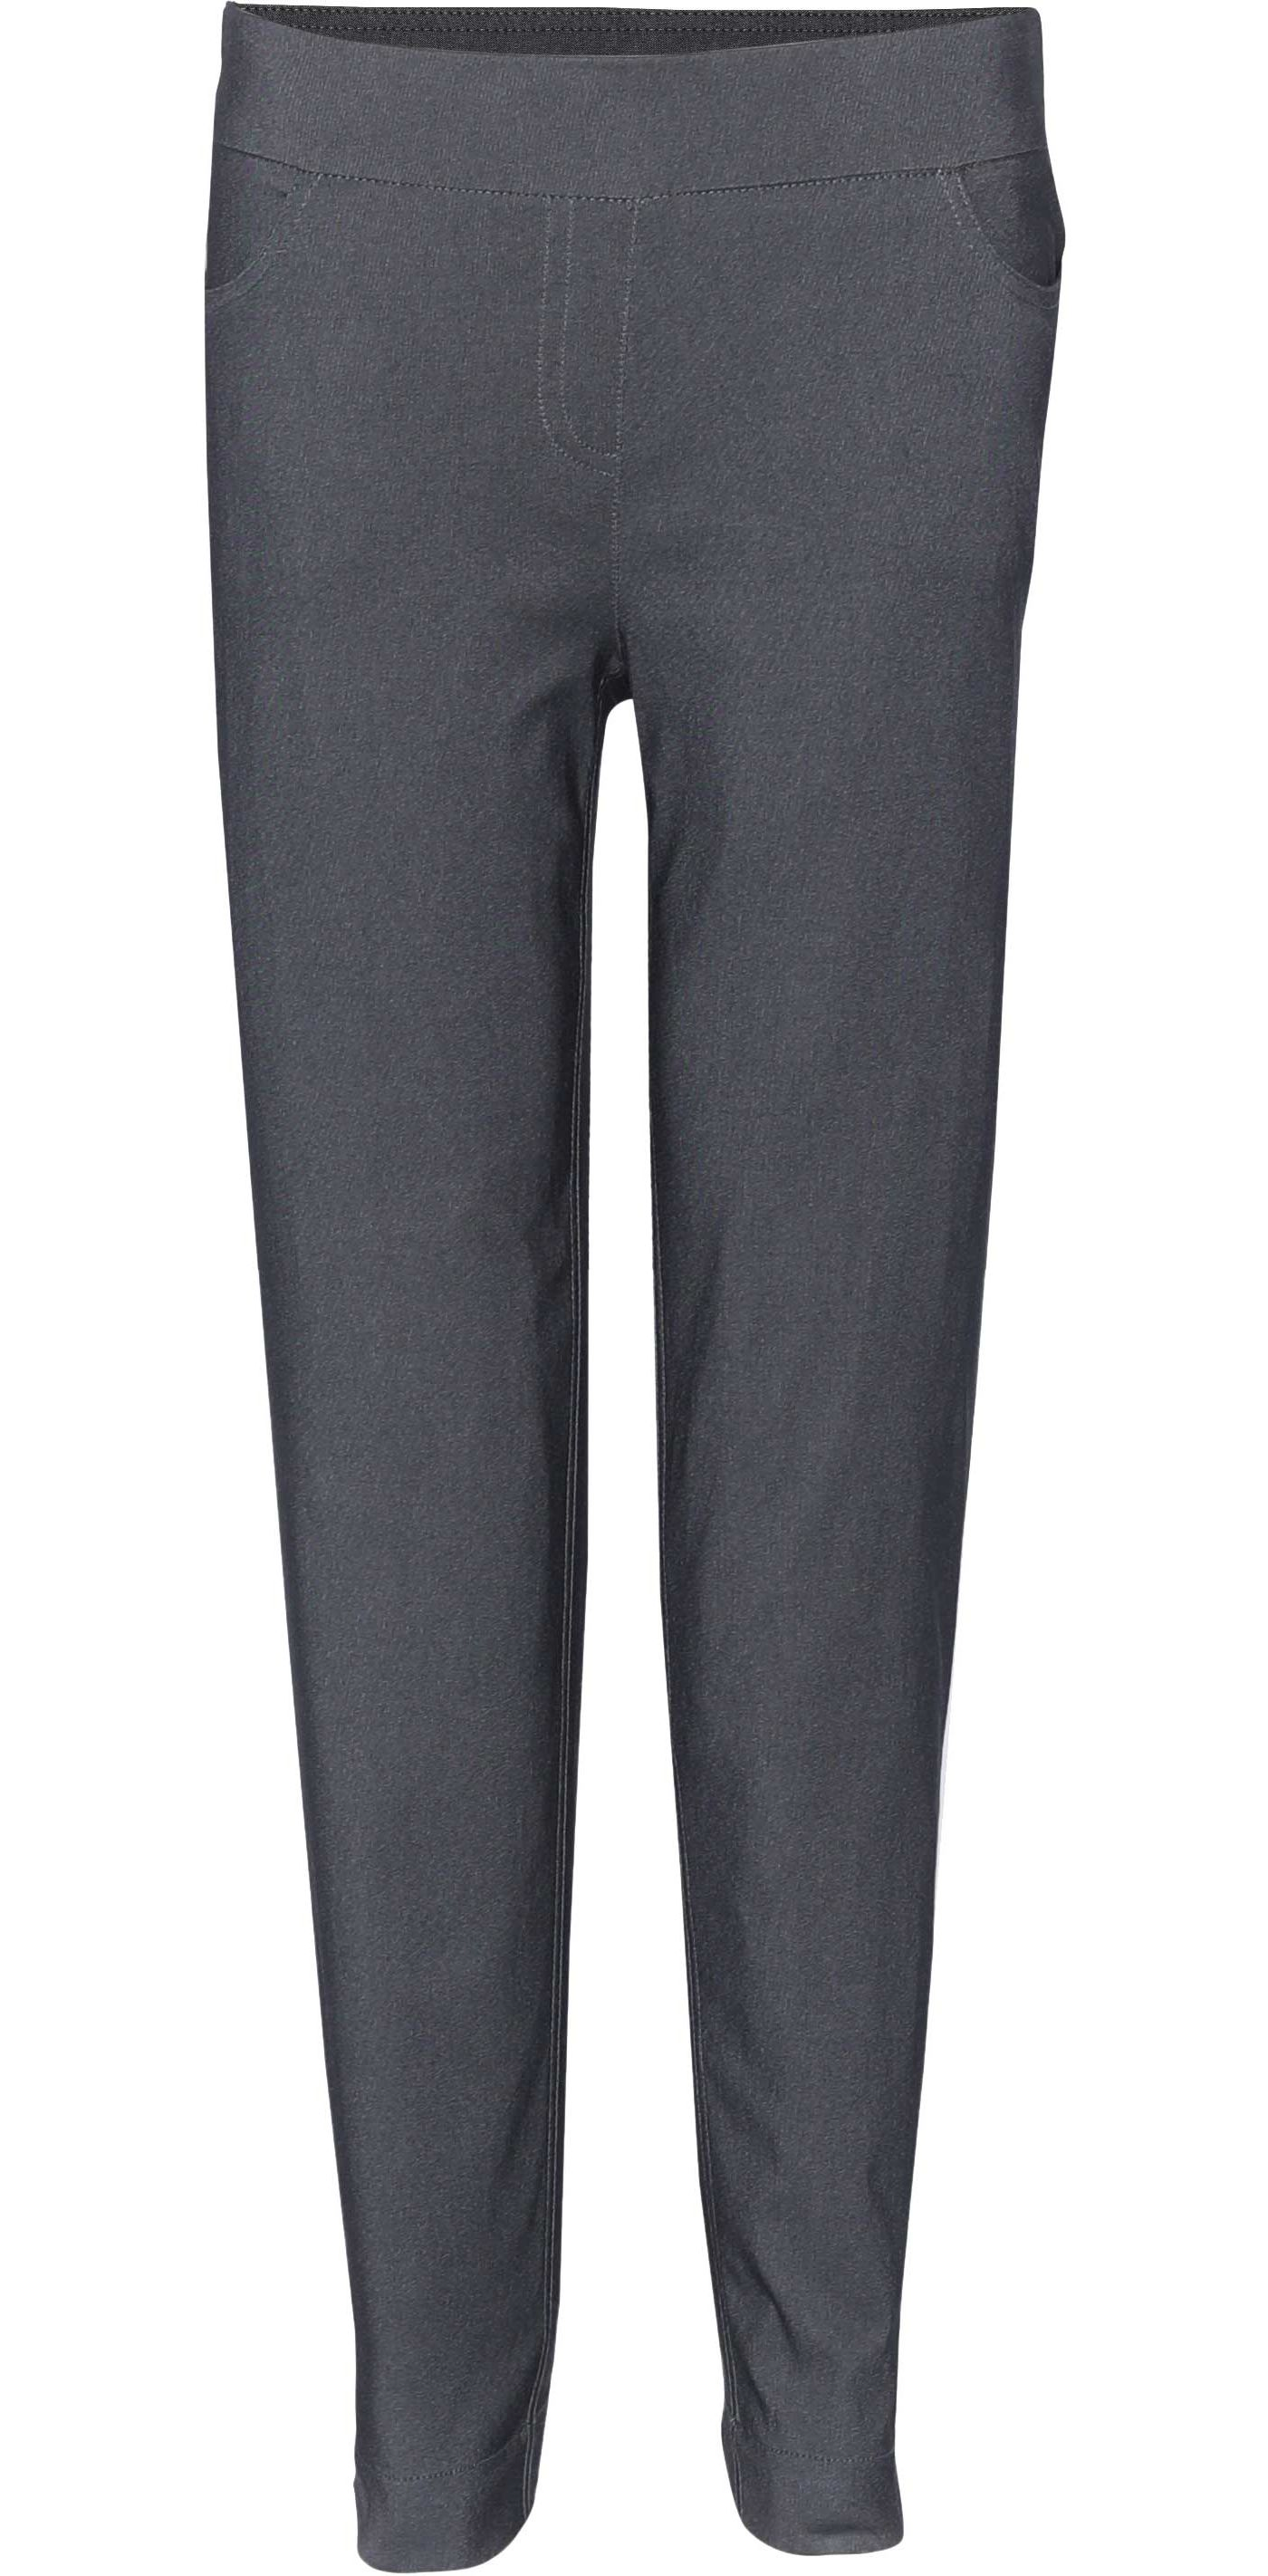 Bette & Court Women's Slim-Sation Golf Pants